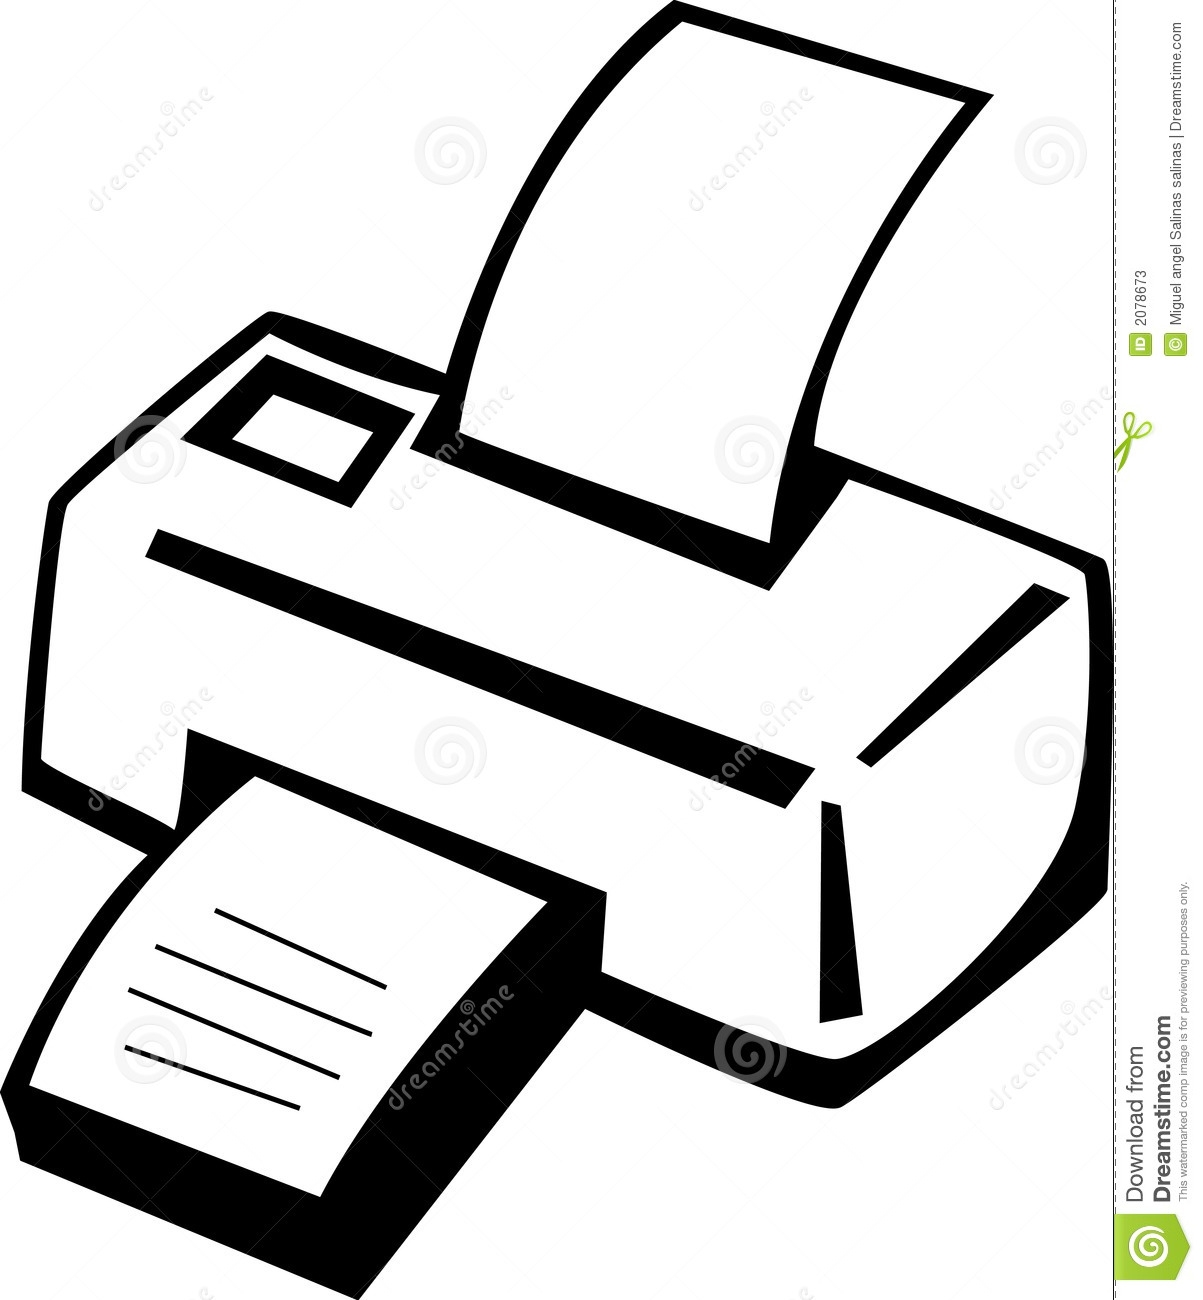 Computer Printer Clipart Black And White.